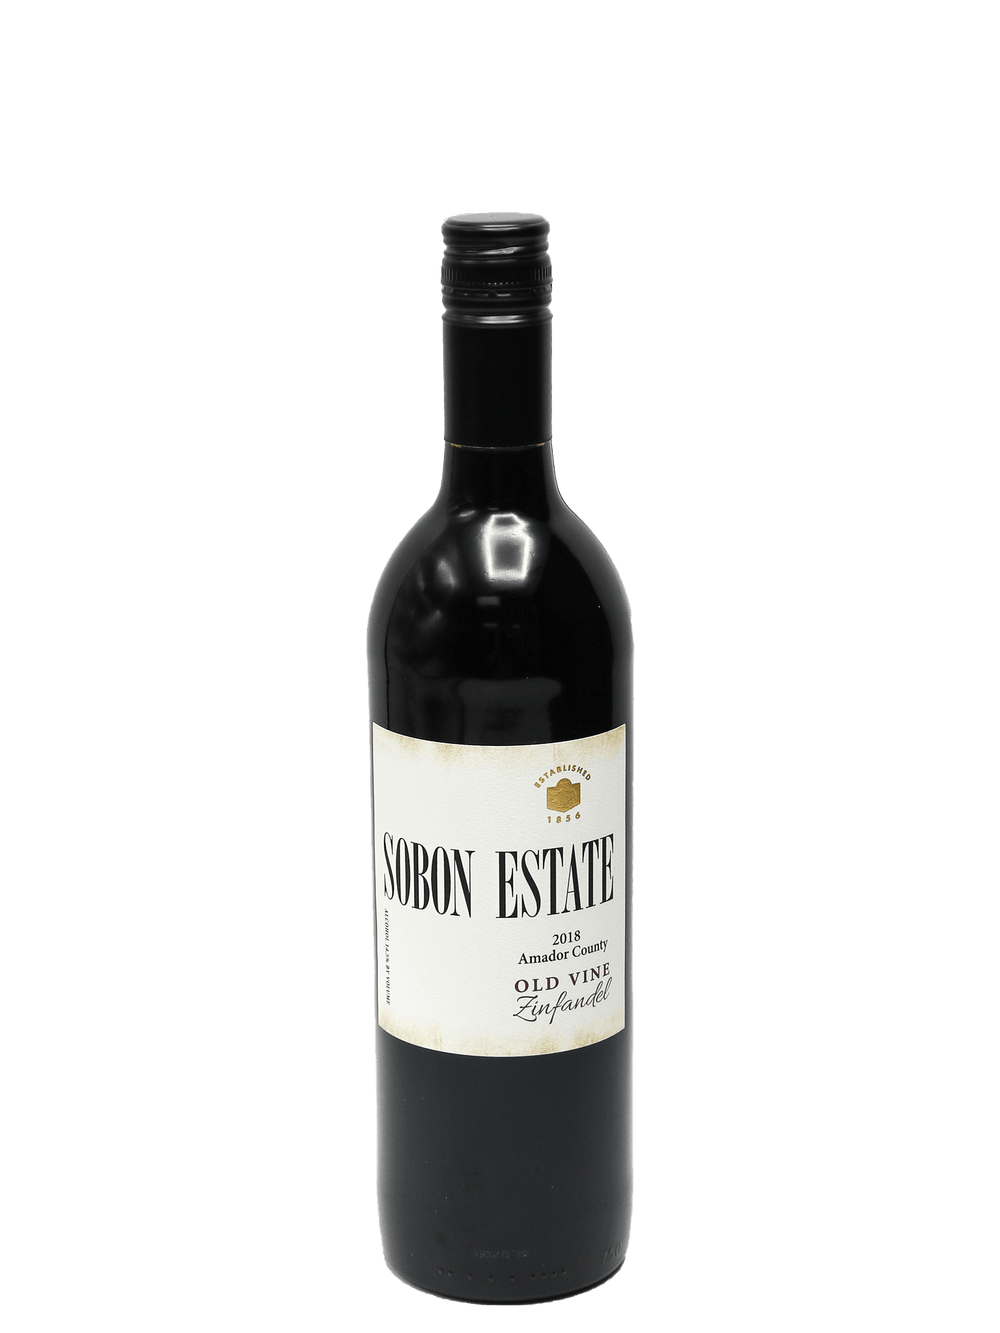 2018 Sobon Estate Zinfandel Old Vine Amador County